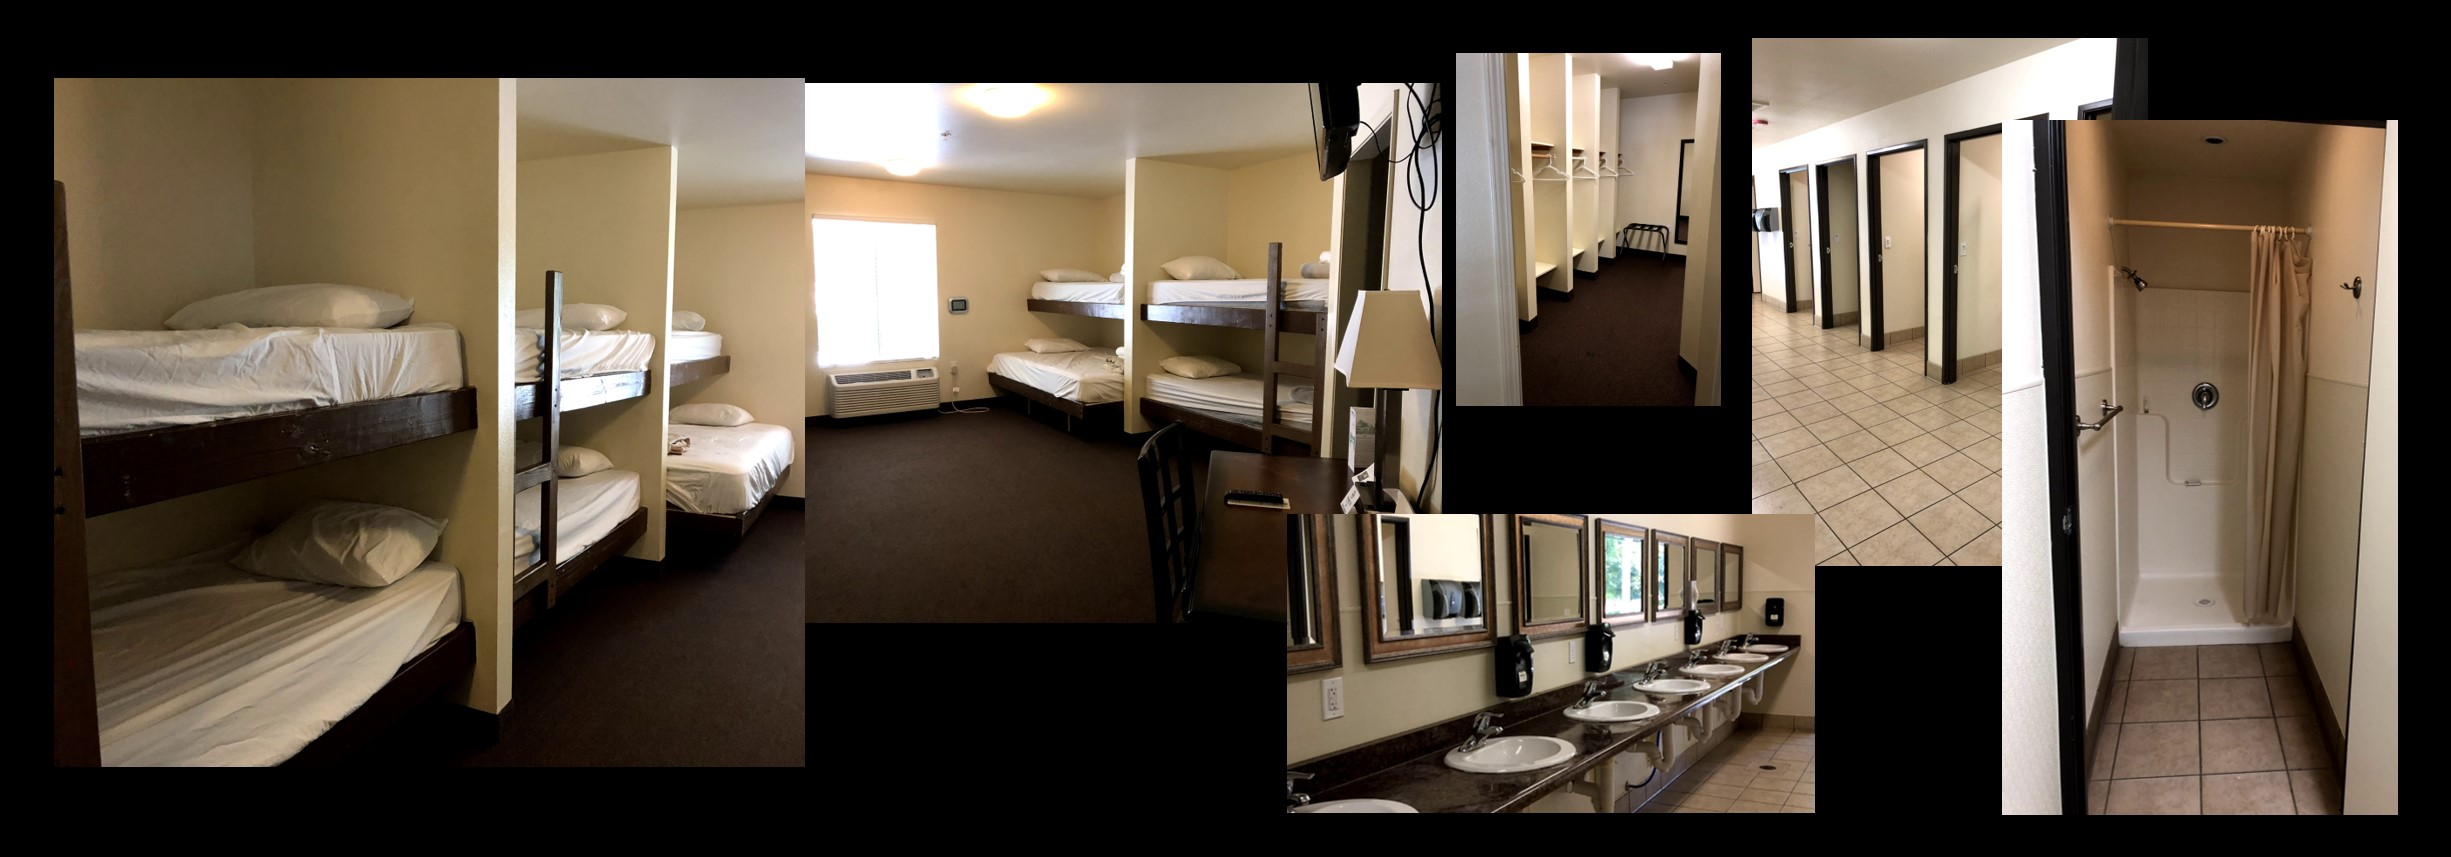 Dorms at Wonder Valley Ranch Resort